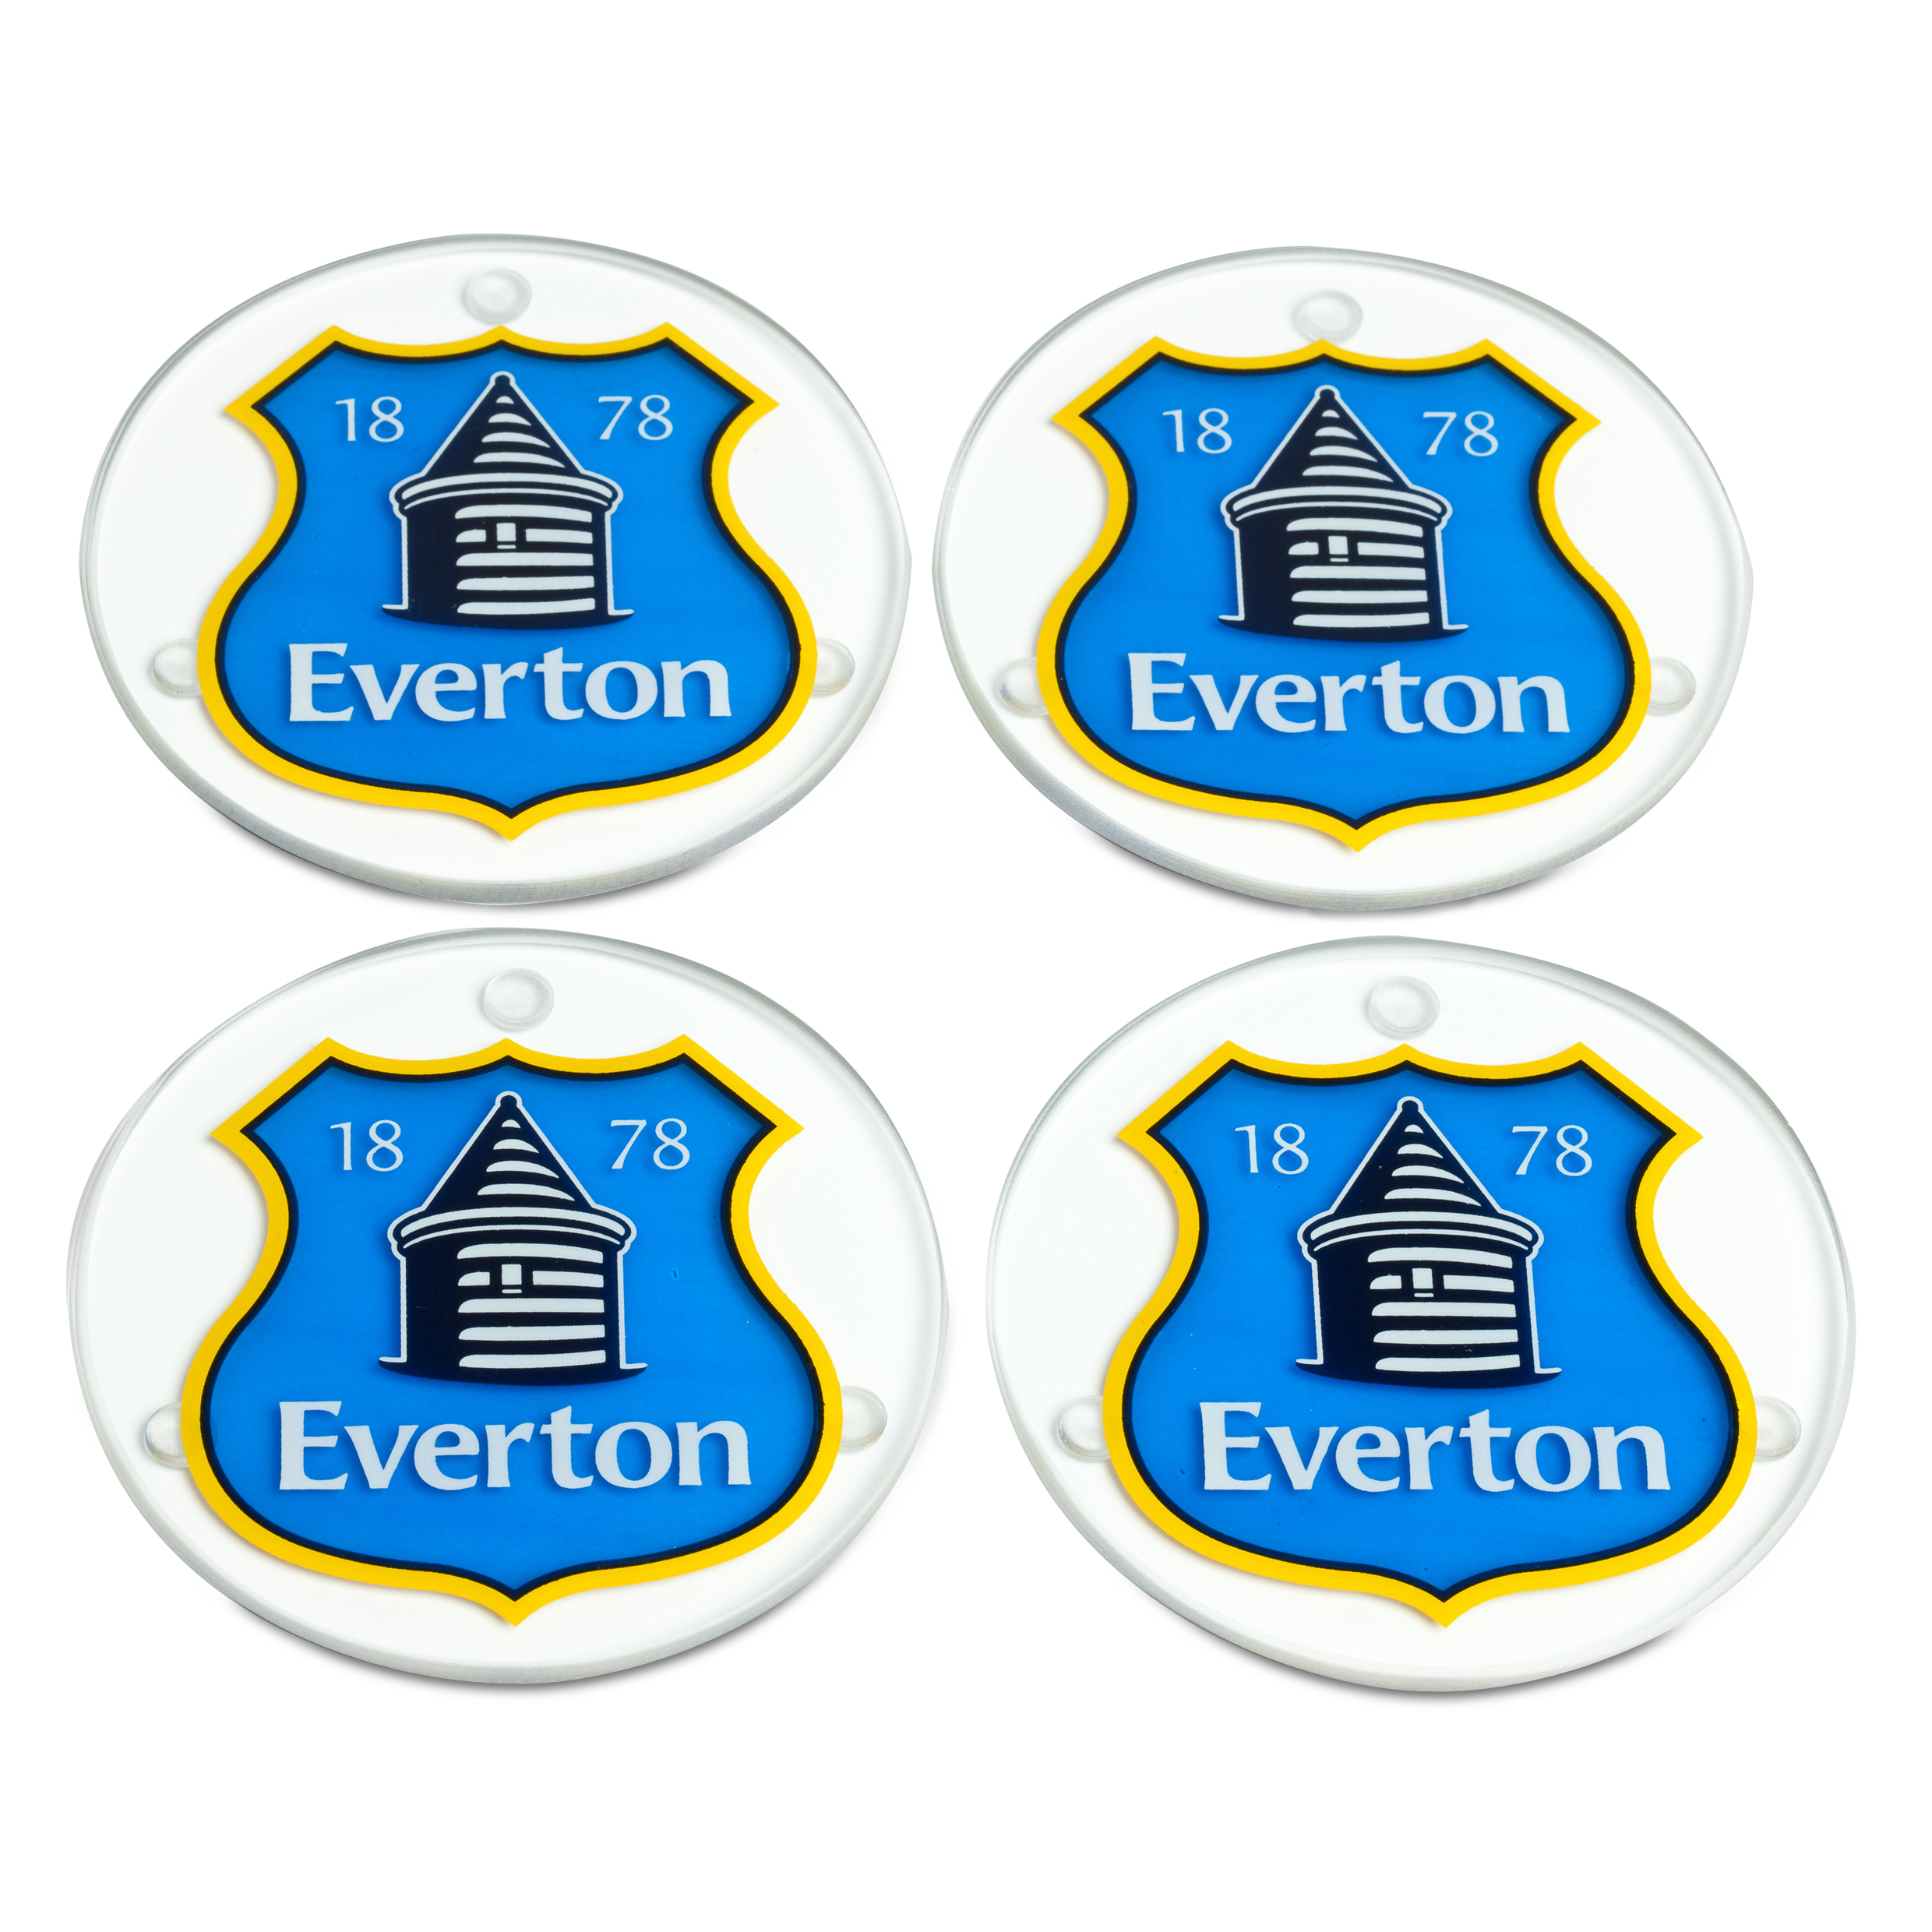 Everton Round Glass Coaster Set